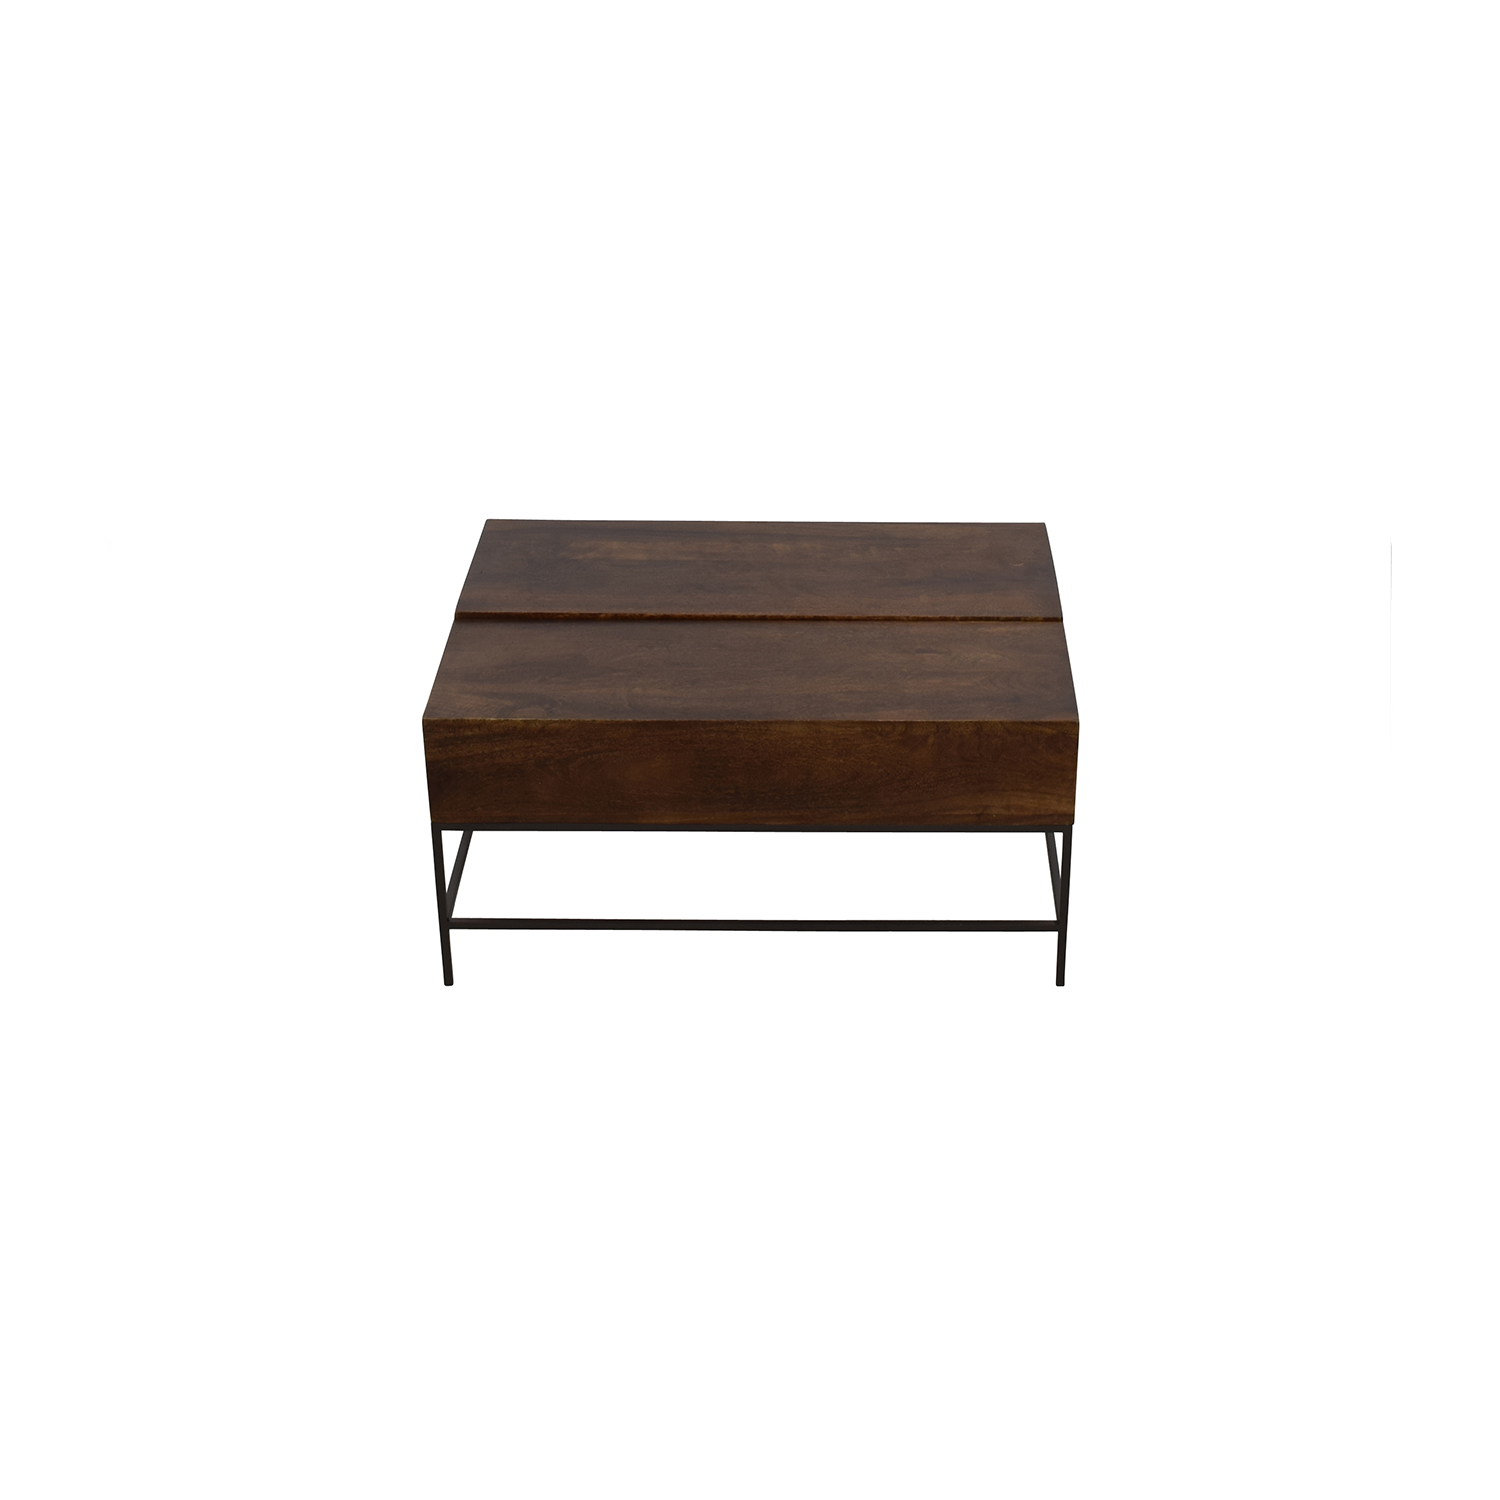 West Elm West Elm Industrial Storage Coffee Table on sale